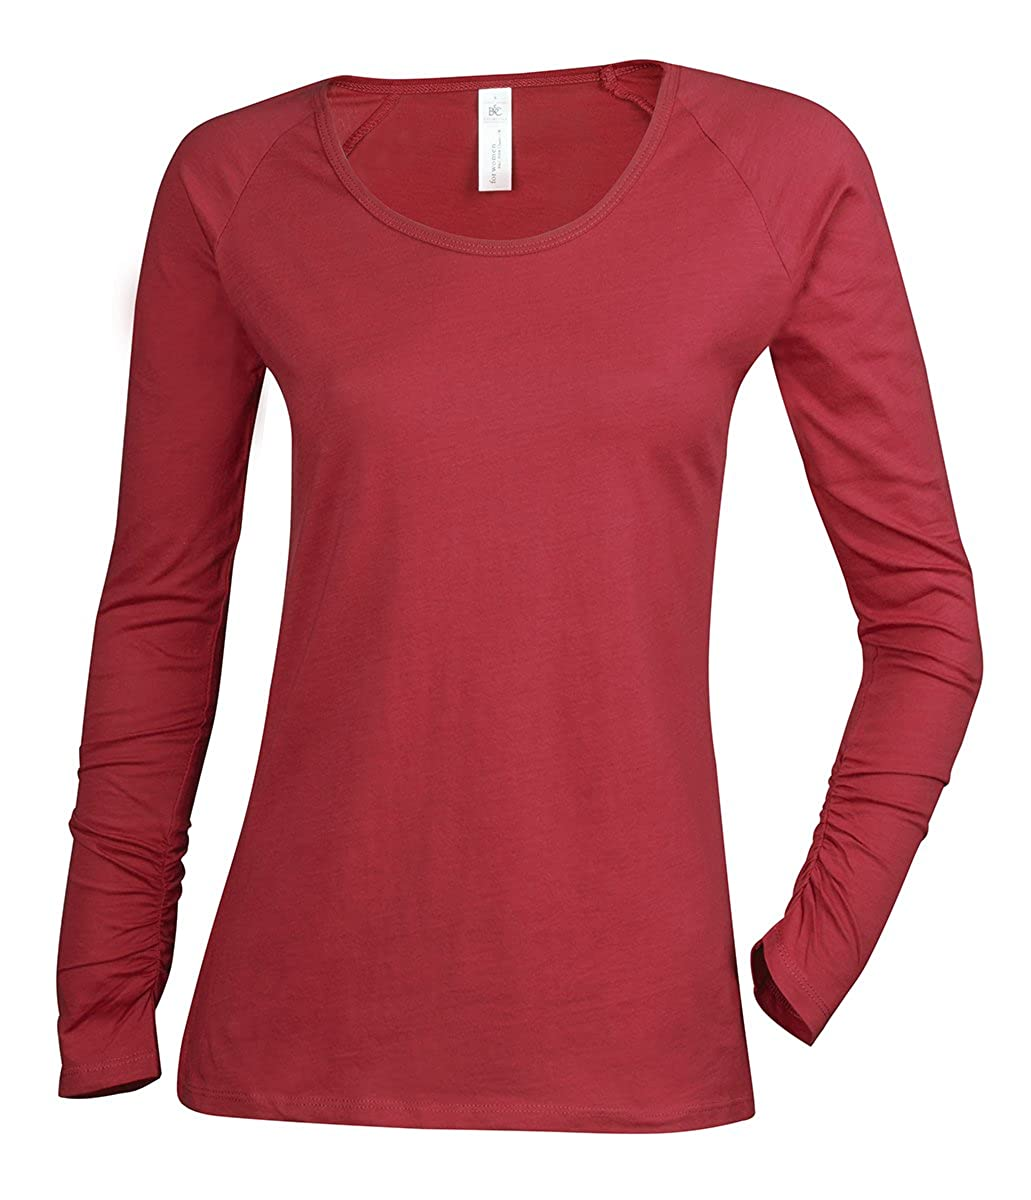 B&C Ladies Plain Long Sleeve 100% Cotton T-Shirt Top